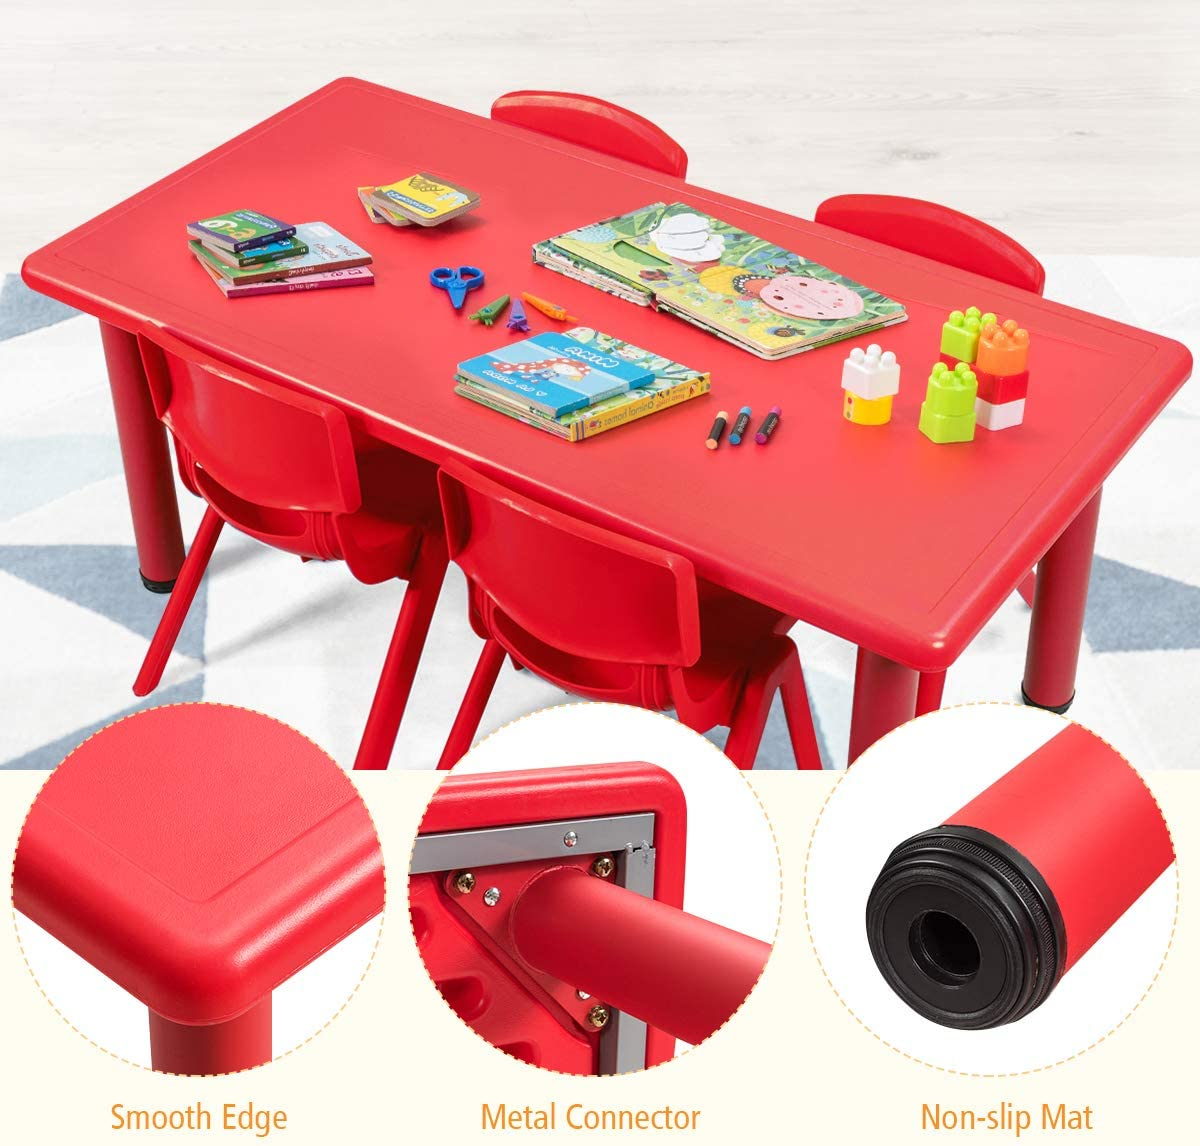 Kindergartens Preschools Indoor//Outdoor Weather-proof Fade-resi DORTALA Kids Table and Chairs Set Activity Desk /& Chair Set Suitable for Daycares Home Table /& 4 Stackable Chairs for Children Reading /& Painting /& Playing /& Snack Time Pre-k classrooms